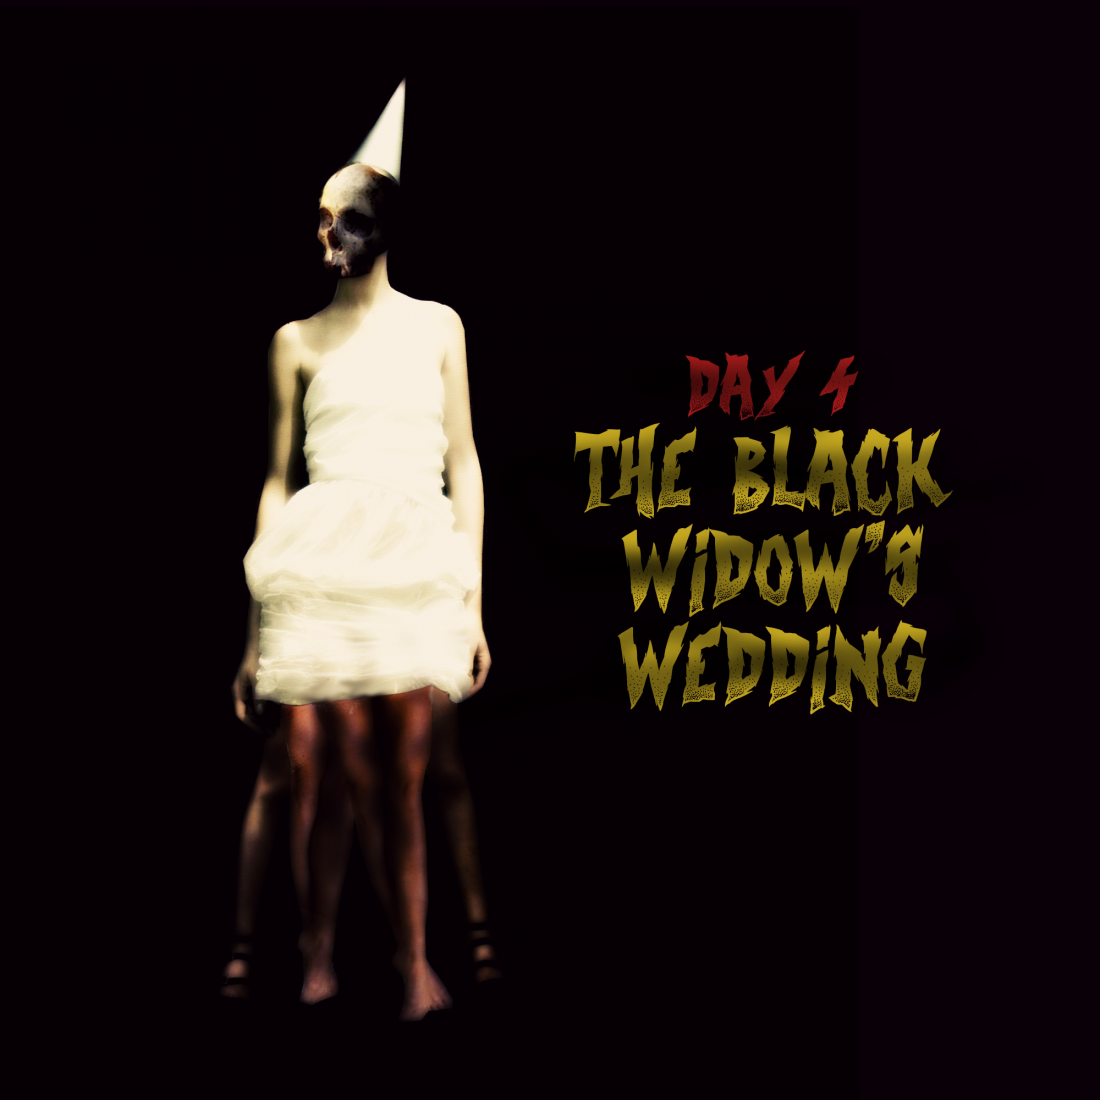 drawlloween-4-the-black-widows-wedding